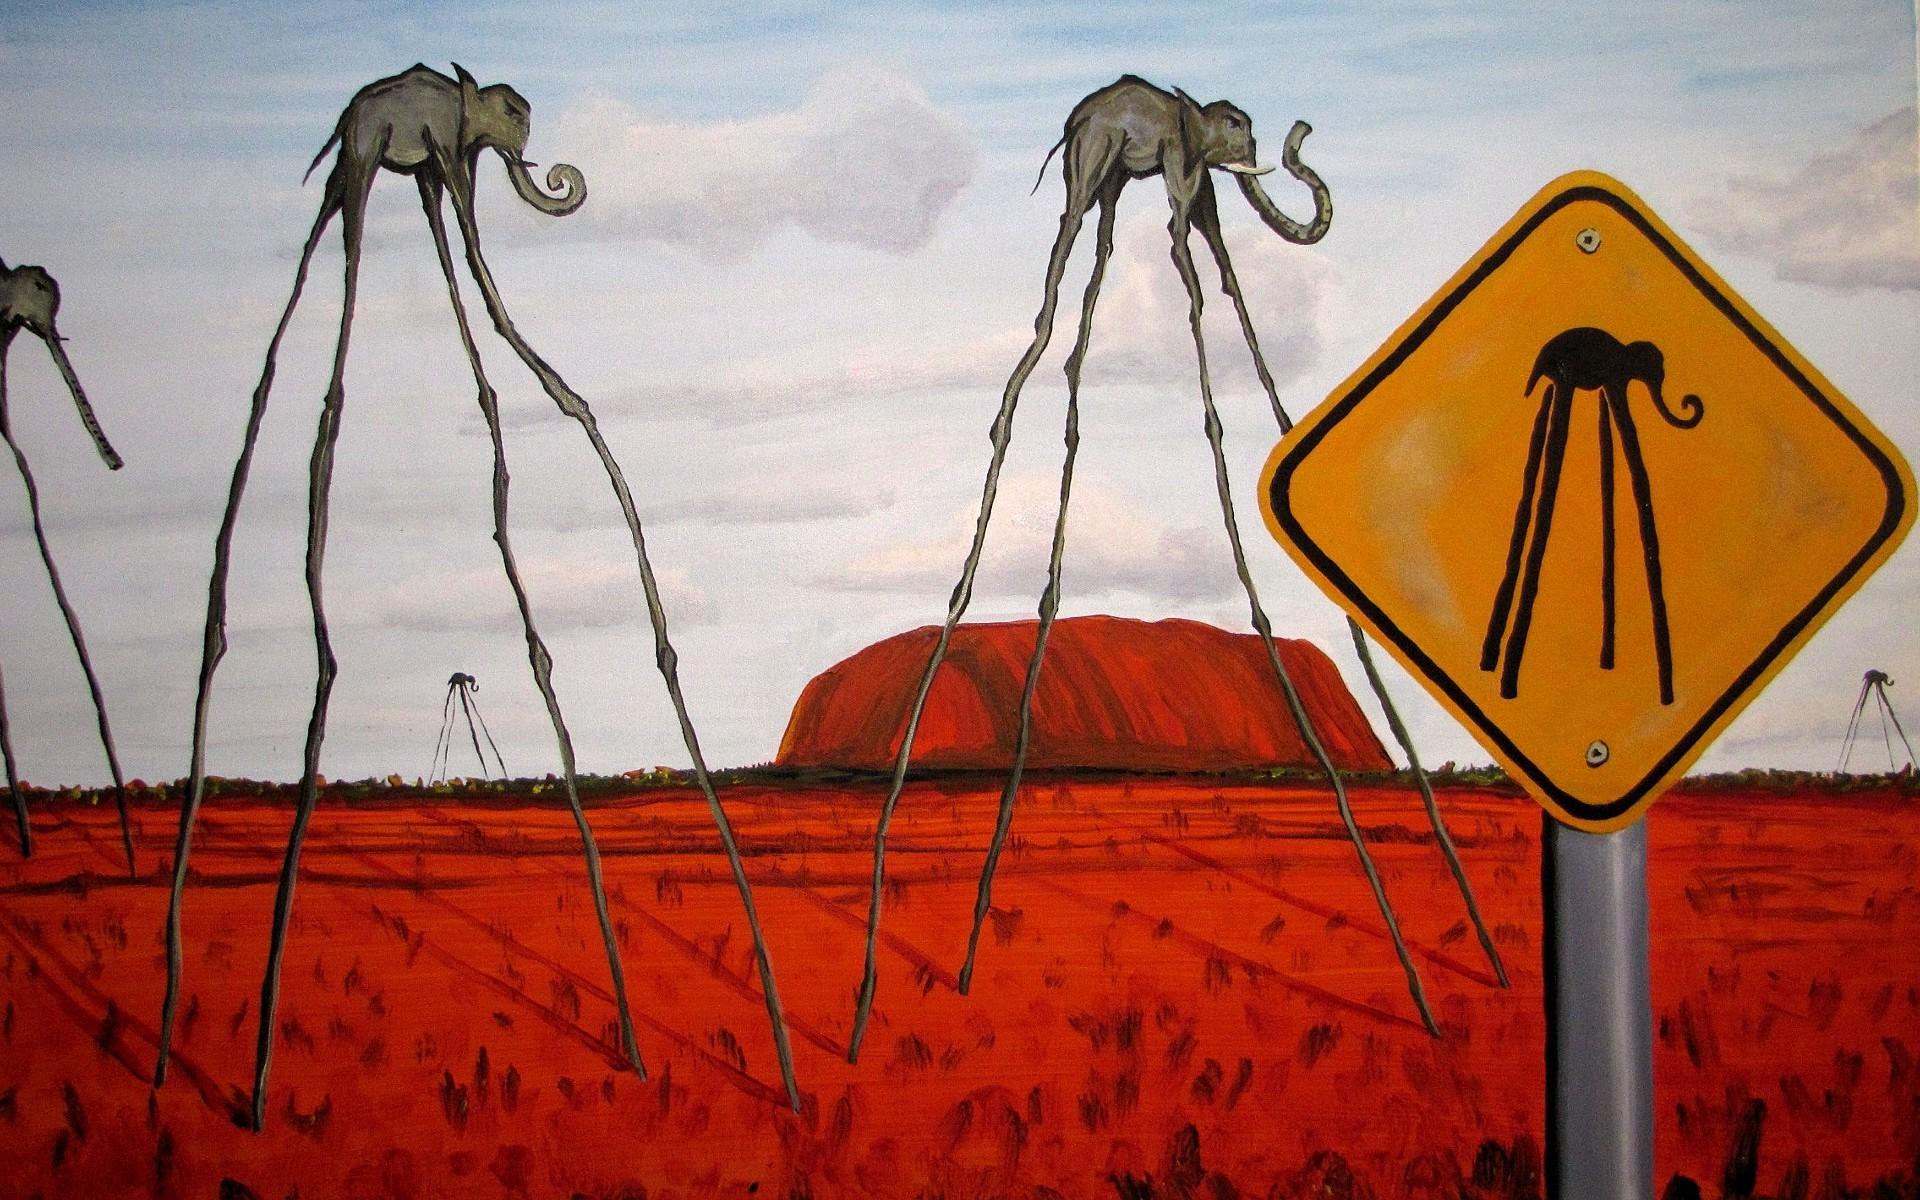 fantasy Art, Surreal, Clouds, Elephants, Signs, Hill, Nature ...